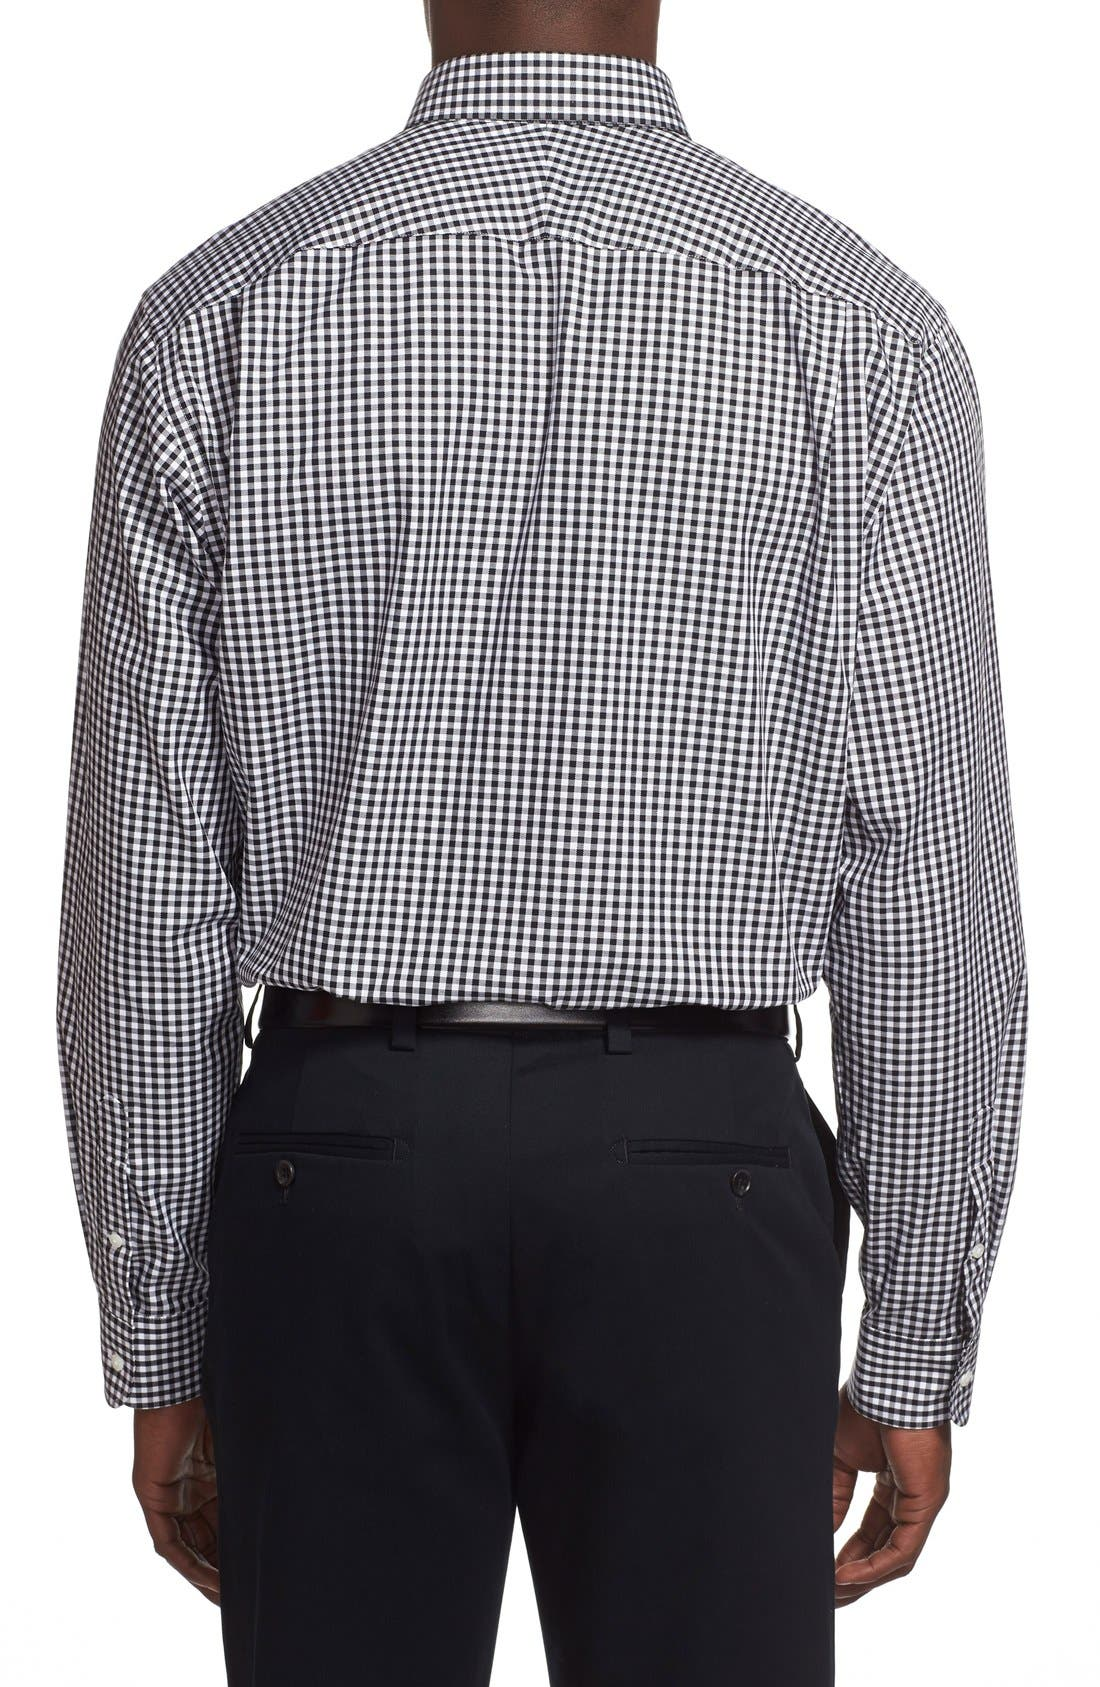 Classic Fit Non-Iron Gingham Dress Shirt,                             Alternate thumbnail 6, color,                             BLACK ROCK